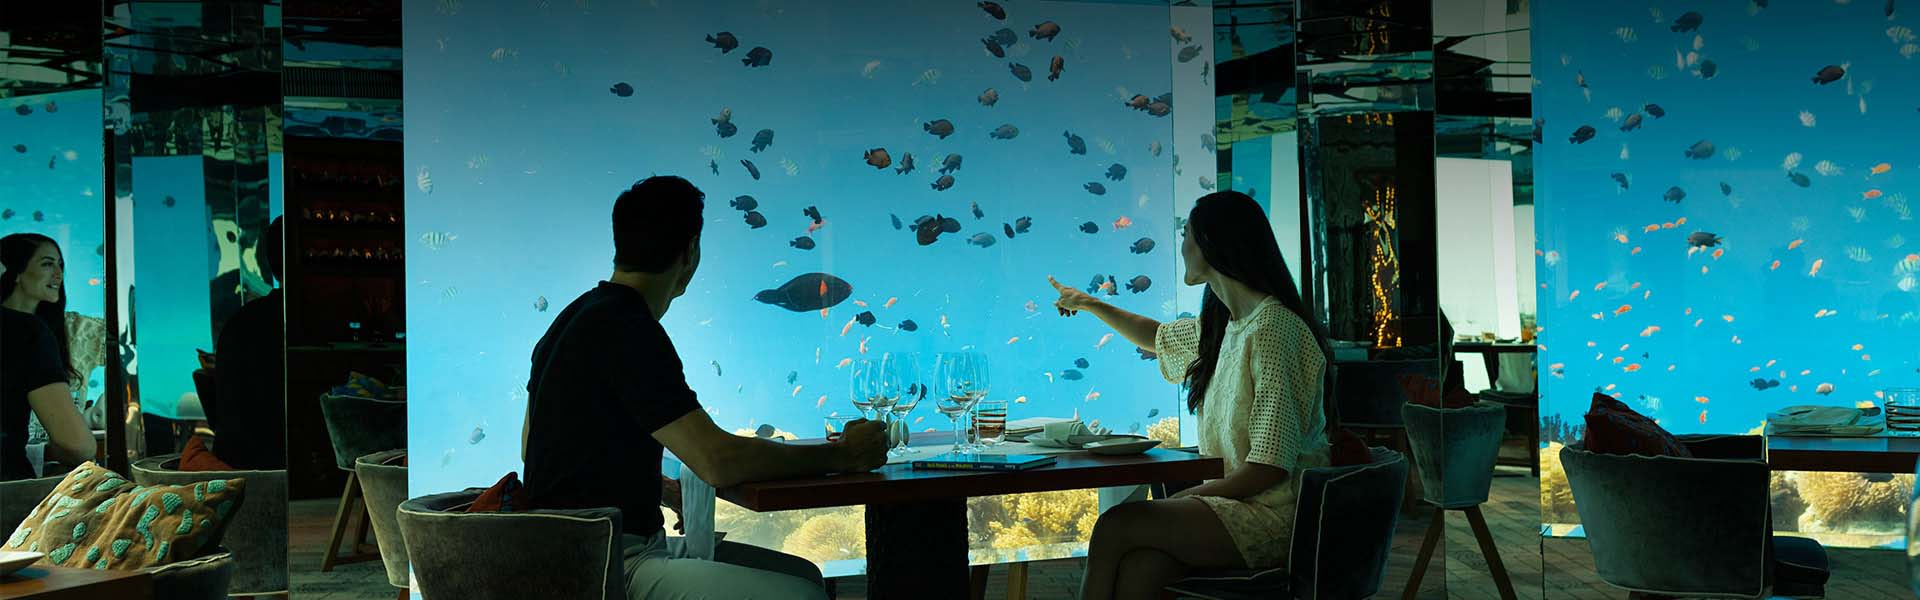 Underwater Restaurant In Maldives Sea Anantara Kihavah